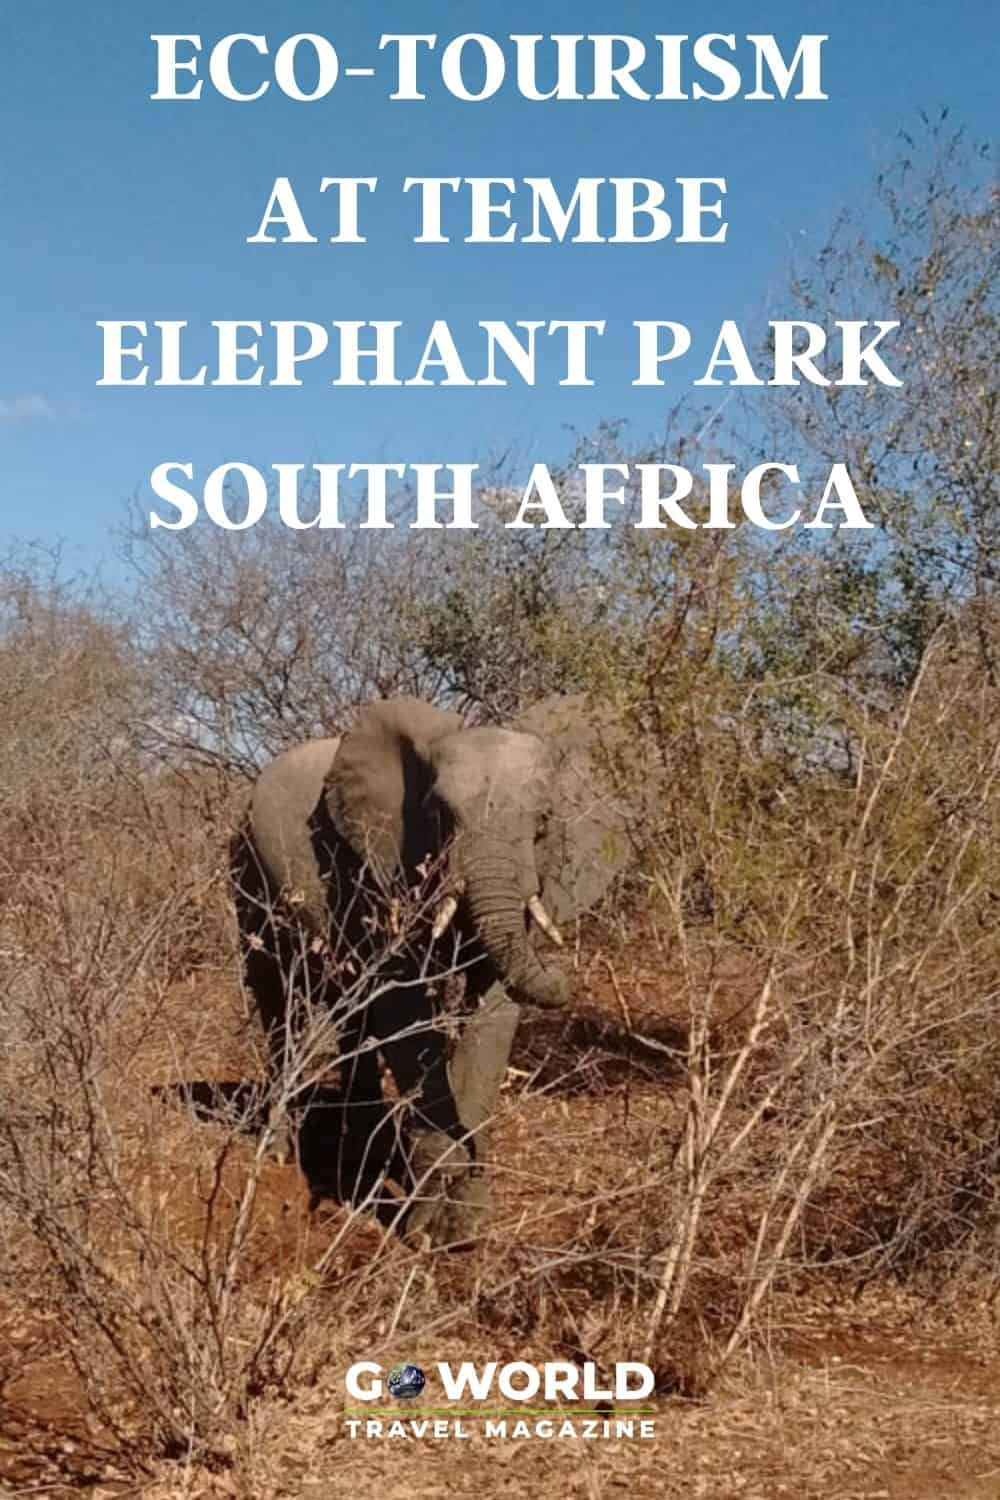 Tembe Elephant Park in South Africa is a community focused on wildlife preservation where you can see protected elephants in natural habitat. #SouthAfrica #Elephantsanctuary #Africawildlife